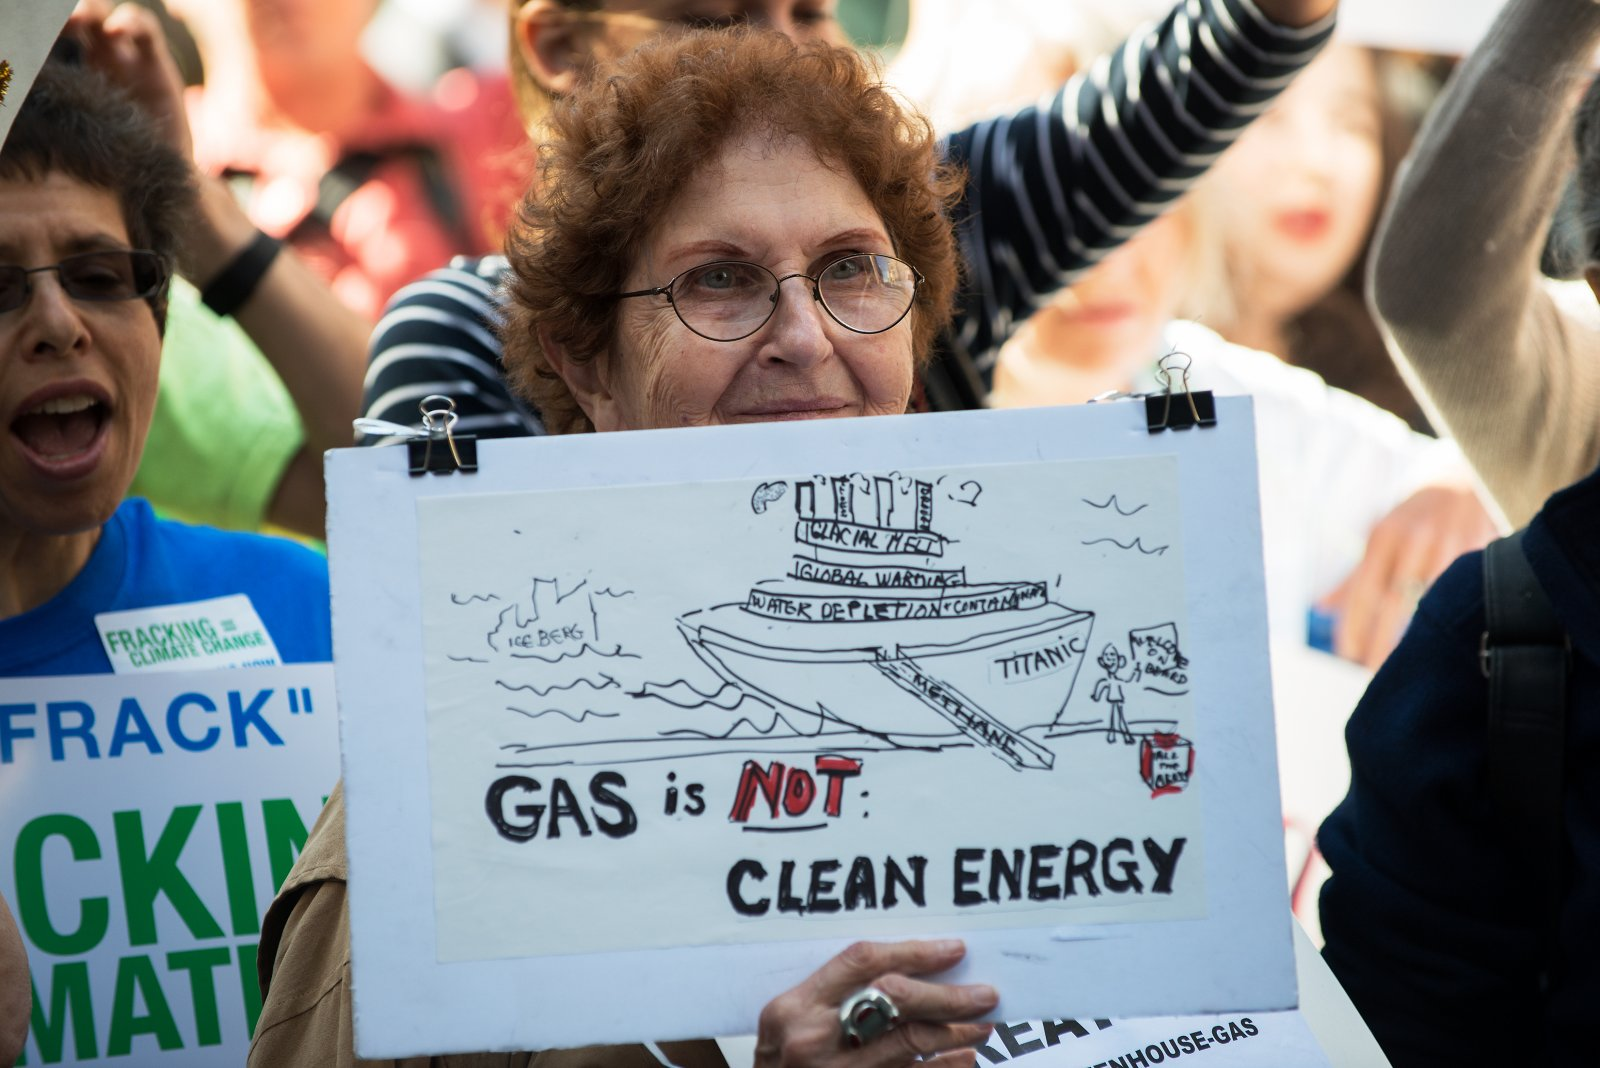 Fracking protests have spread across the country